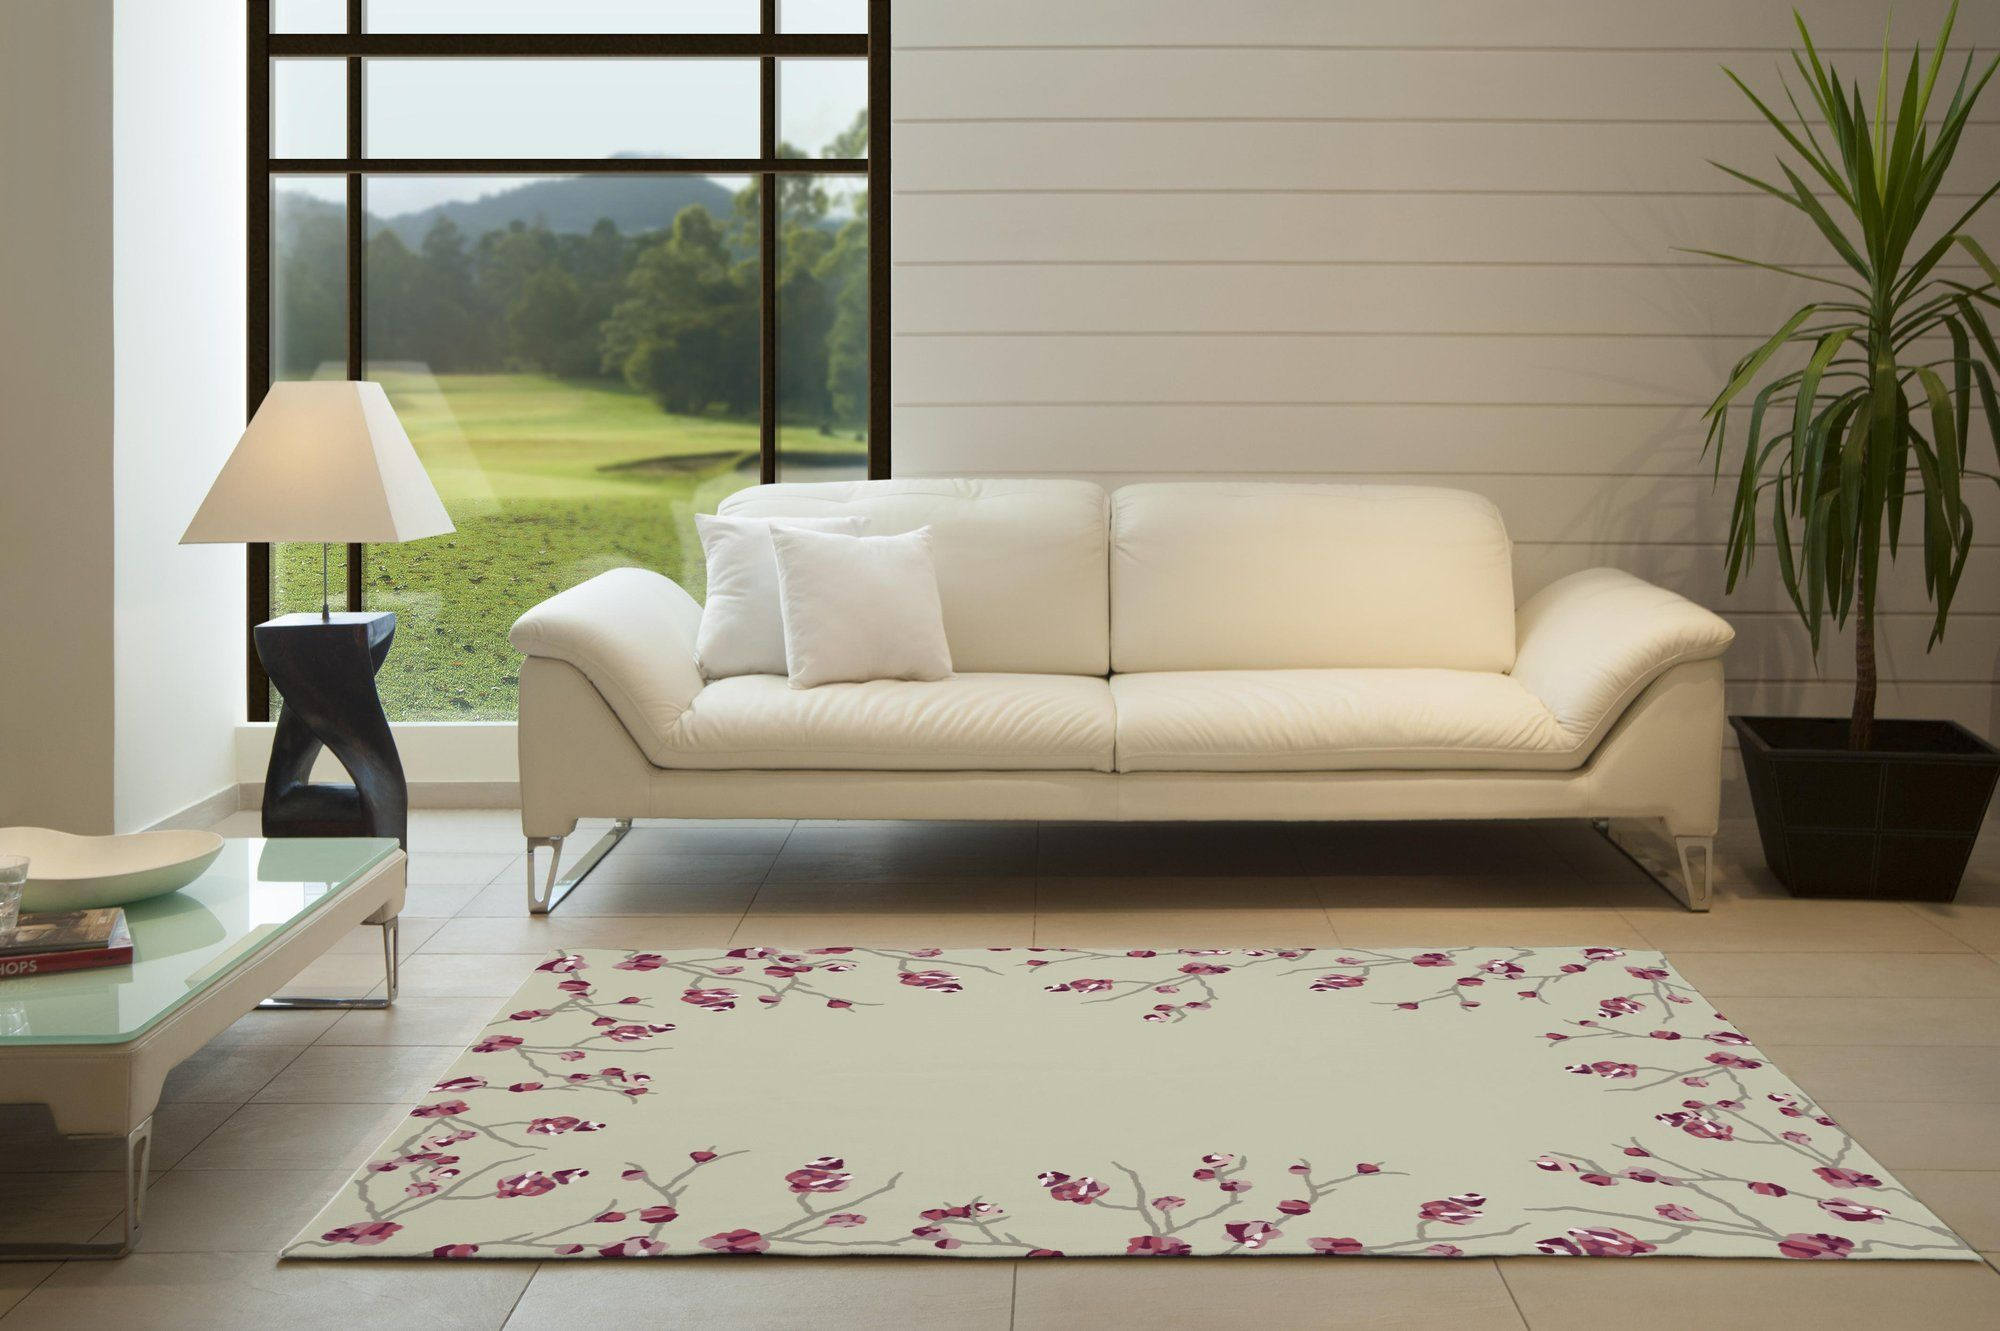 Pine Hollow Cherry Blossom Beige Area Rug